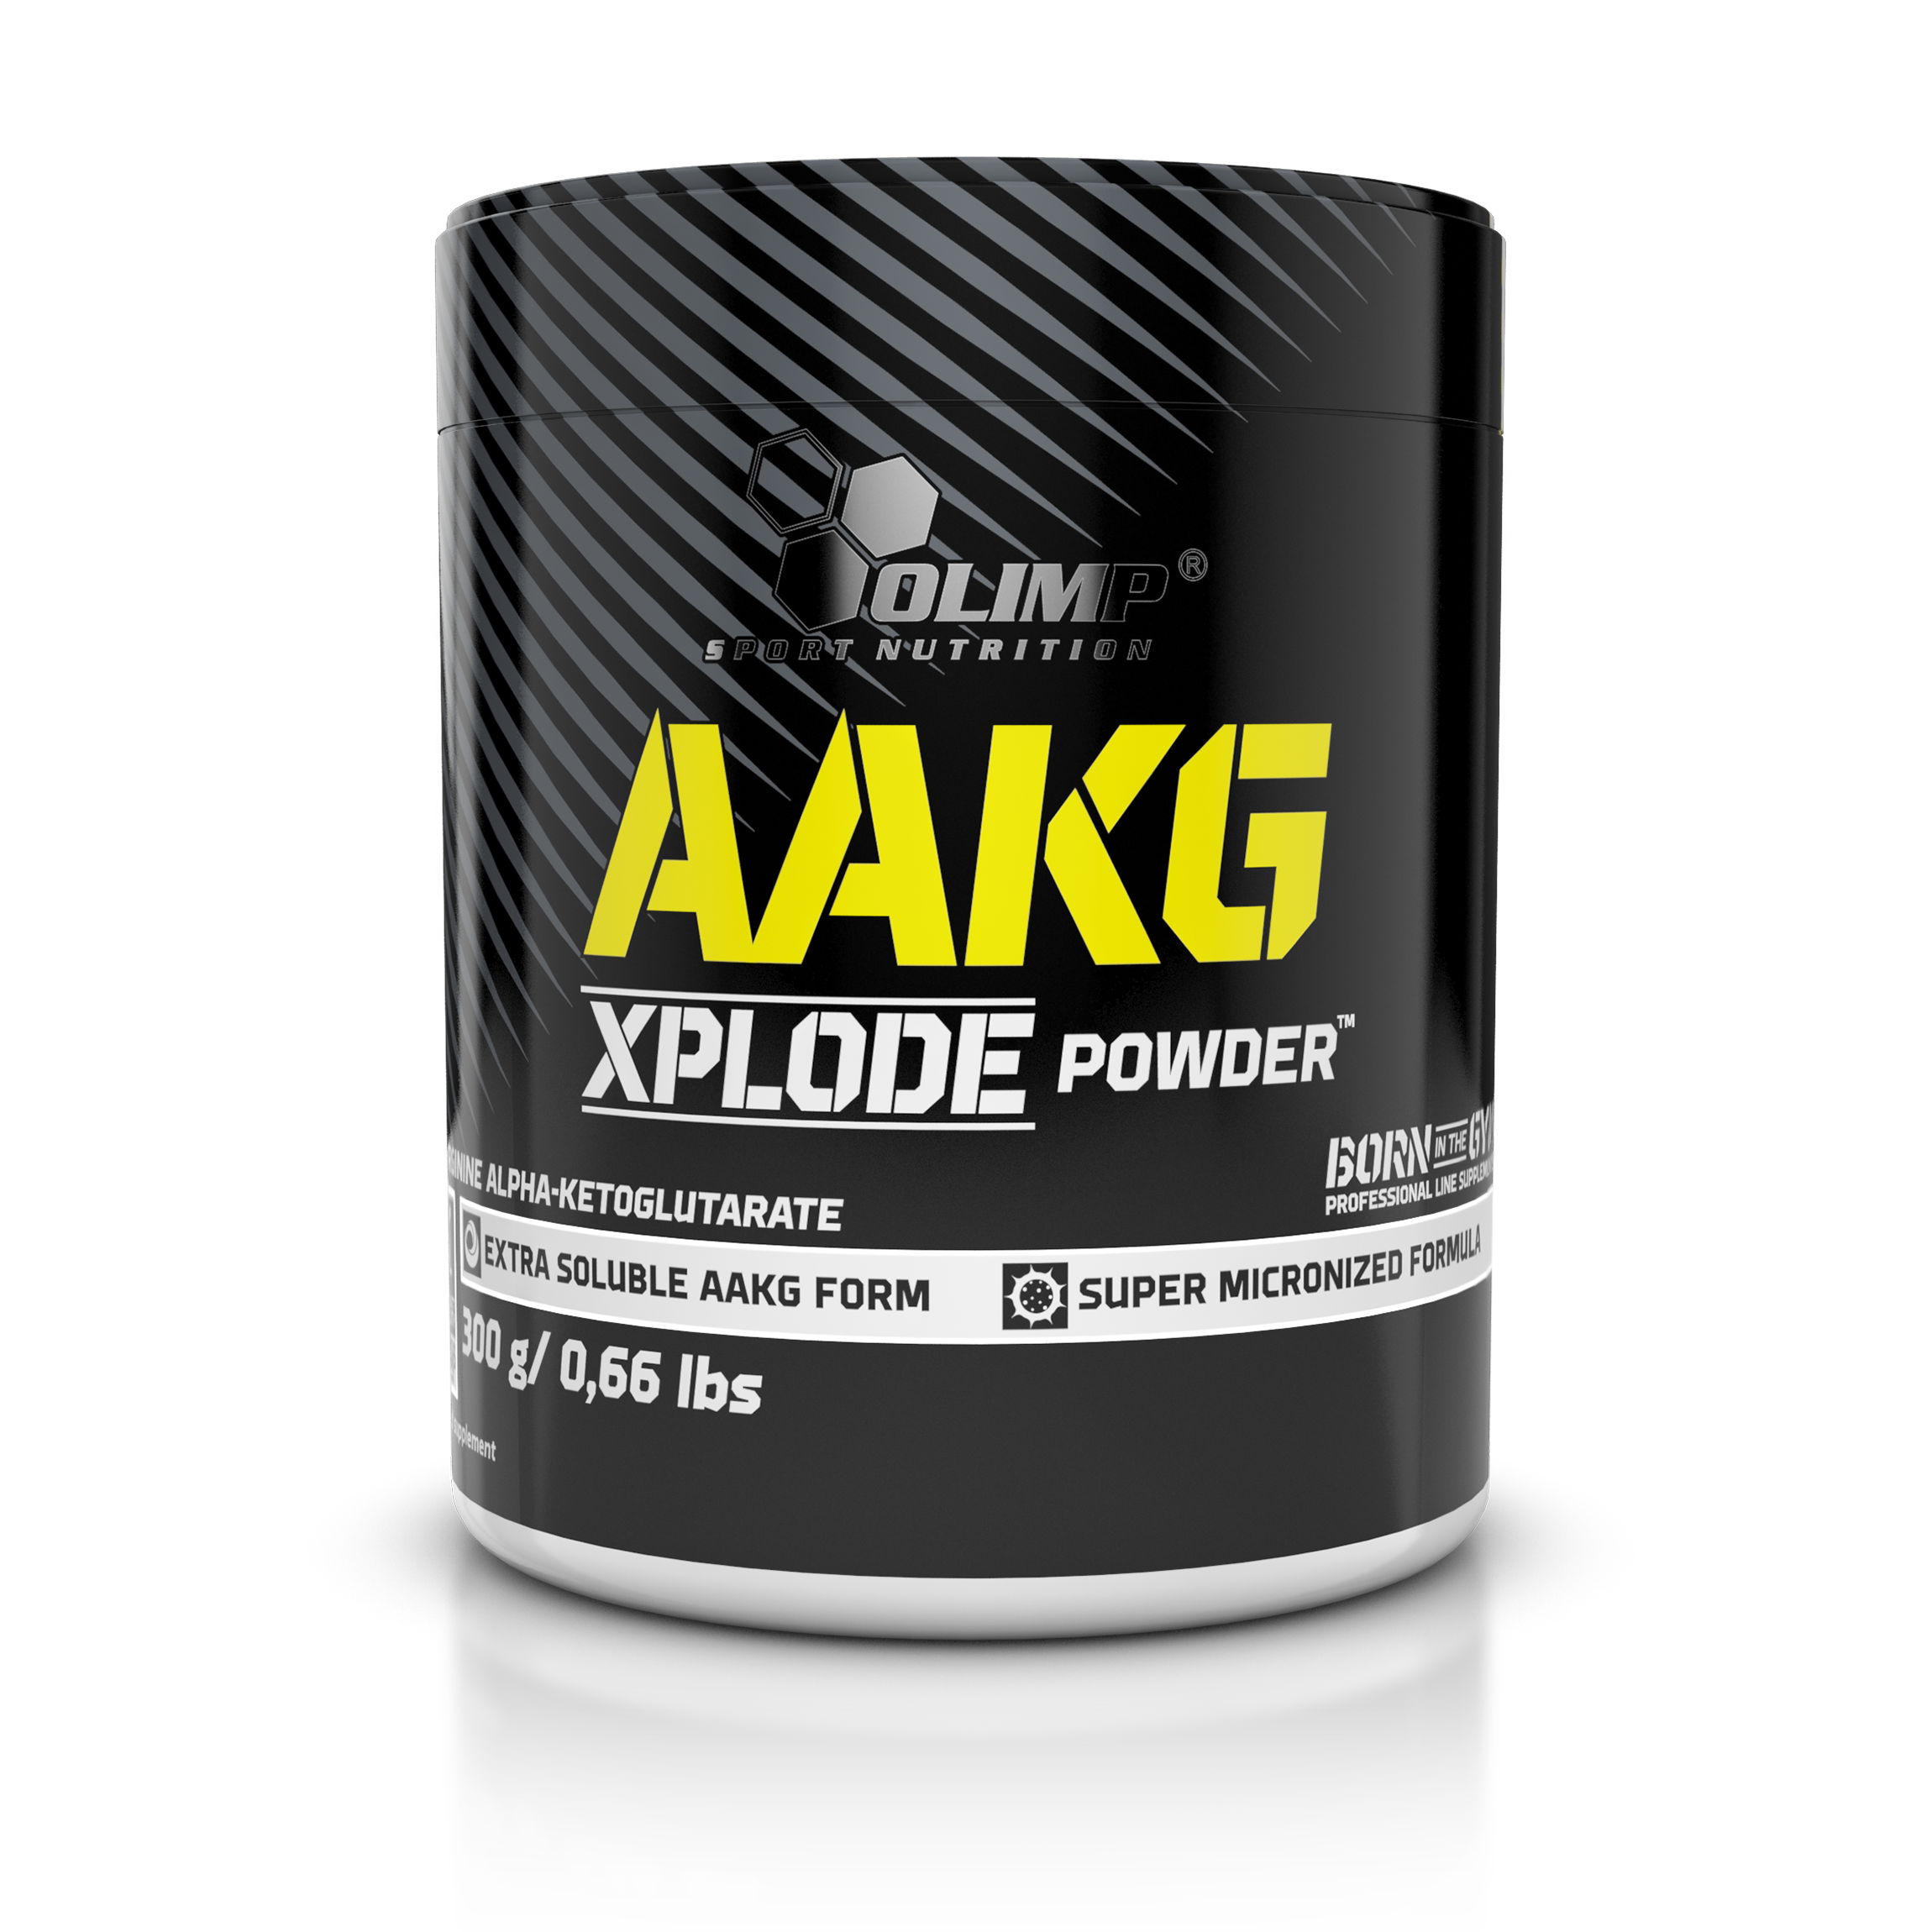 OLIMP, AAKG XPLODE POWDER, ARGININE, ORANGE, 300 g